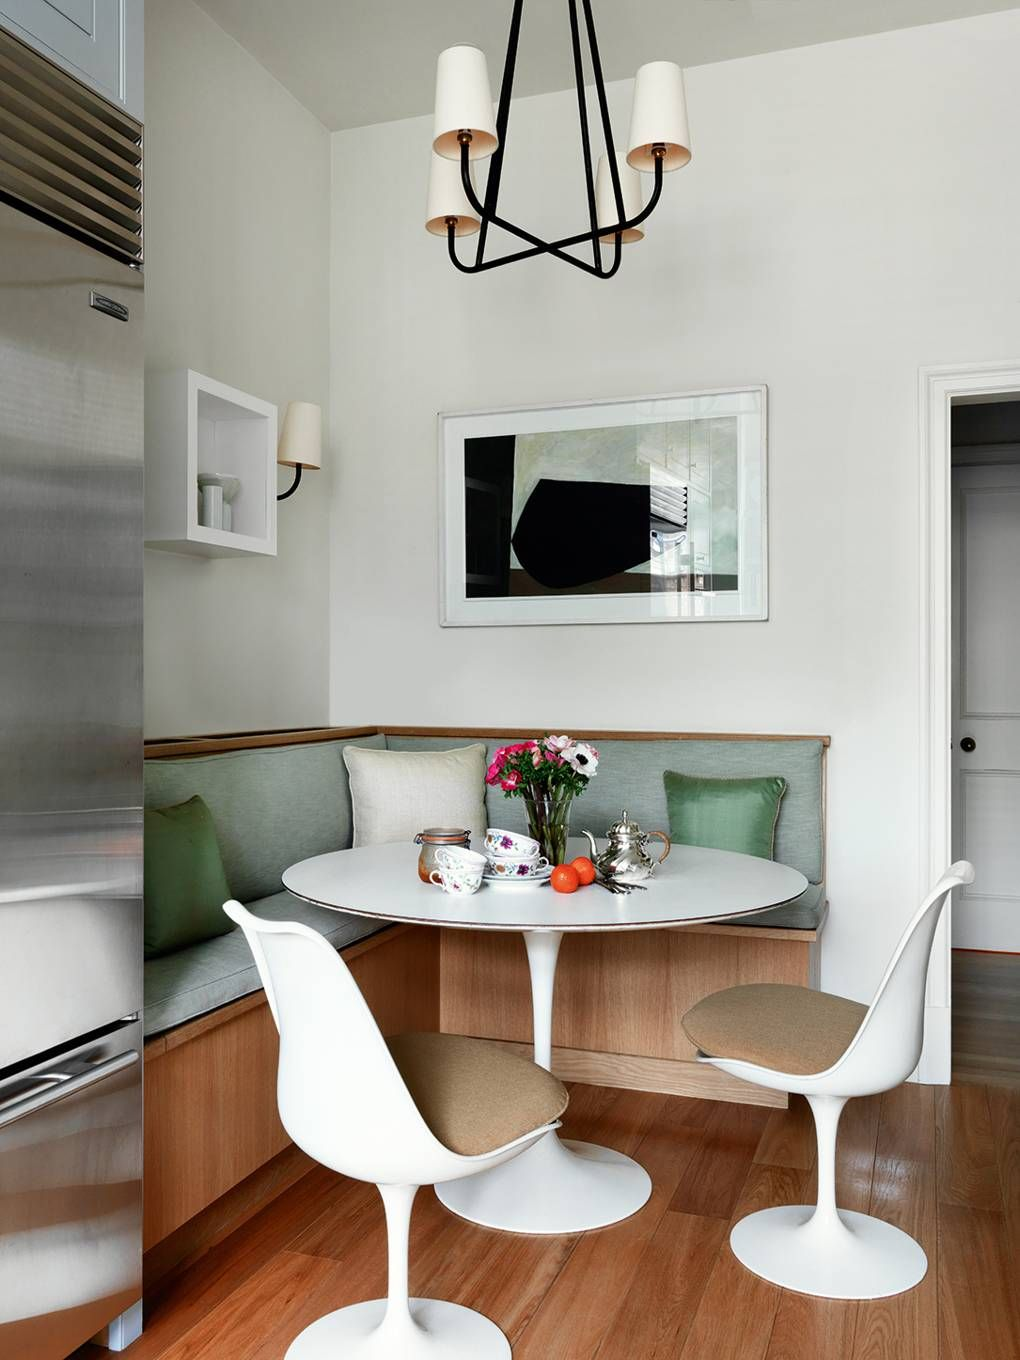 Dining Room Designs For Small Spaces: An Elegant And Airy London Apartment By Hugh Henry